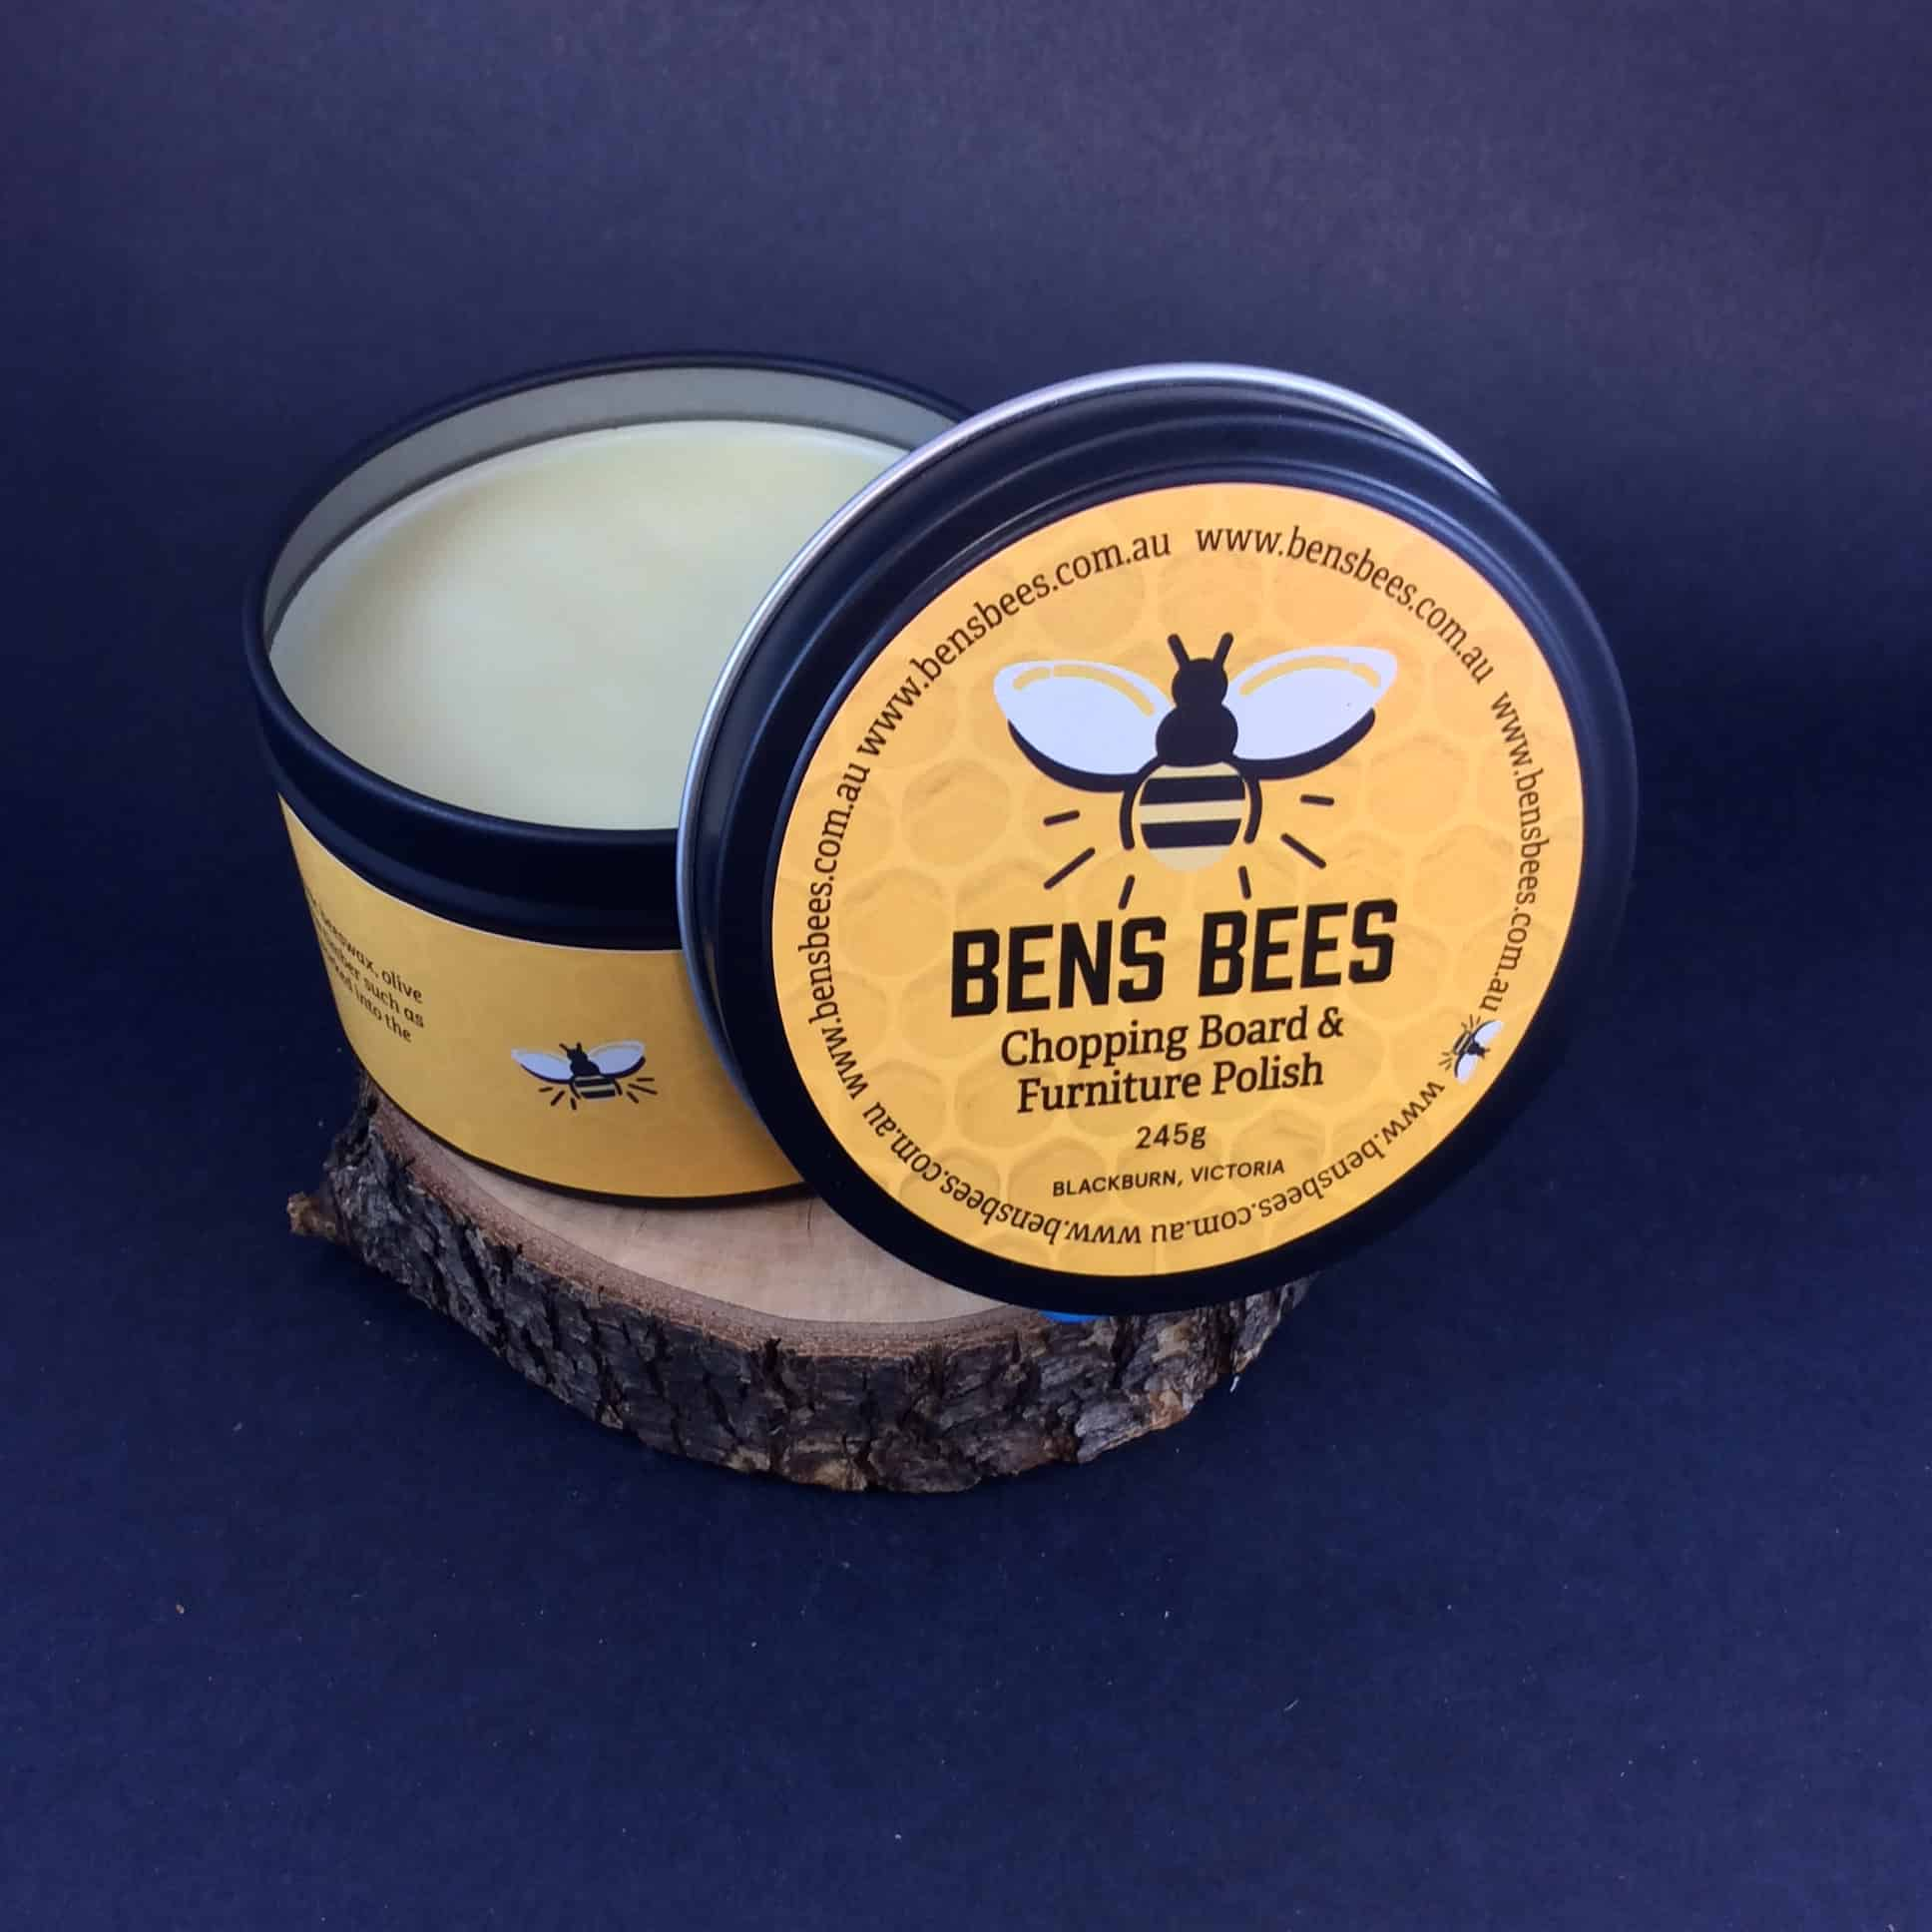 Ben's Bees Chopping Board And Furniture Polish